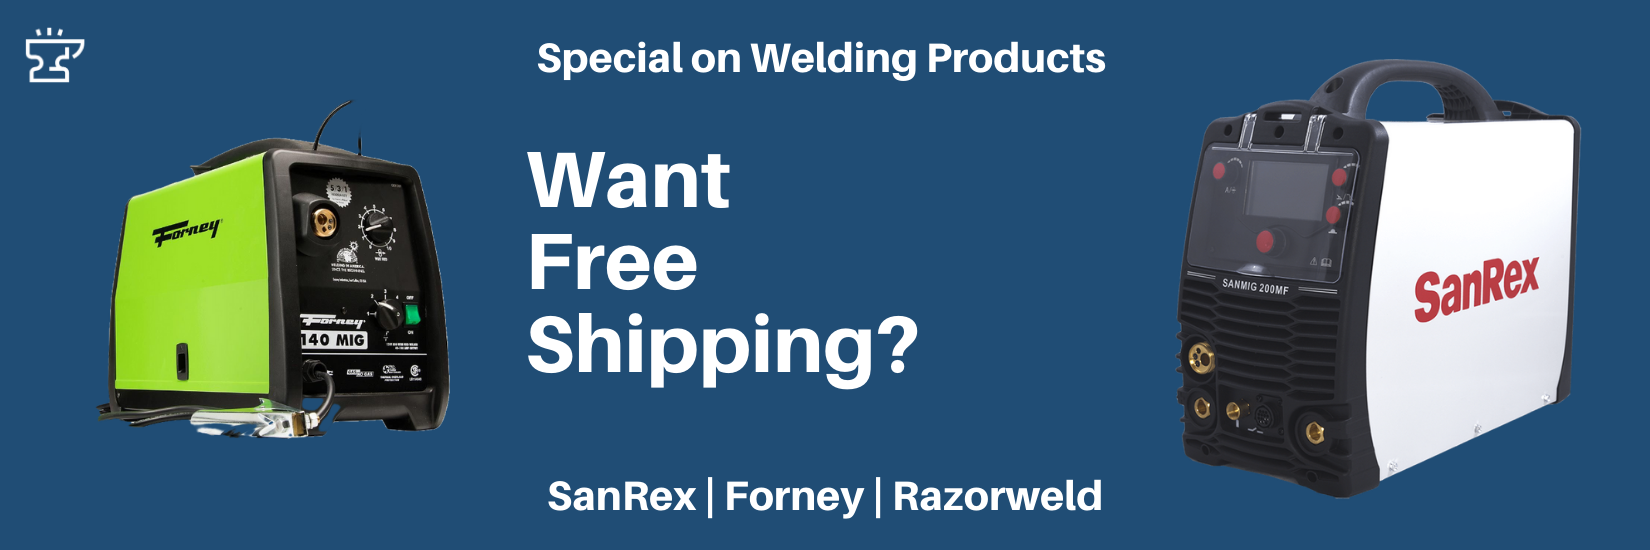 Free Shipping on Welding